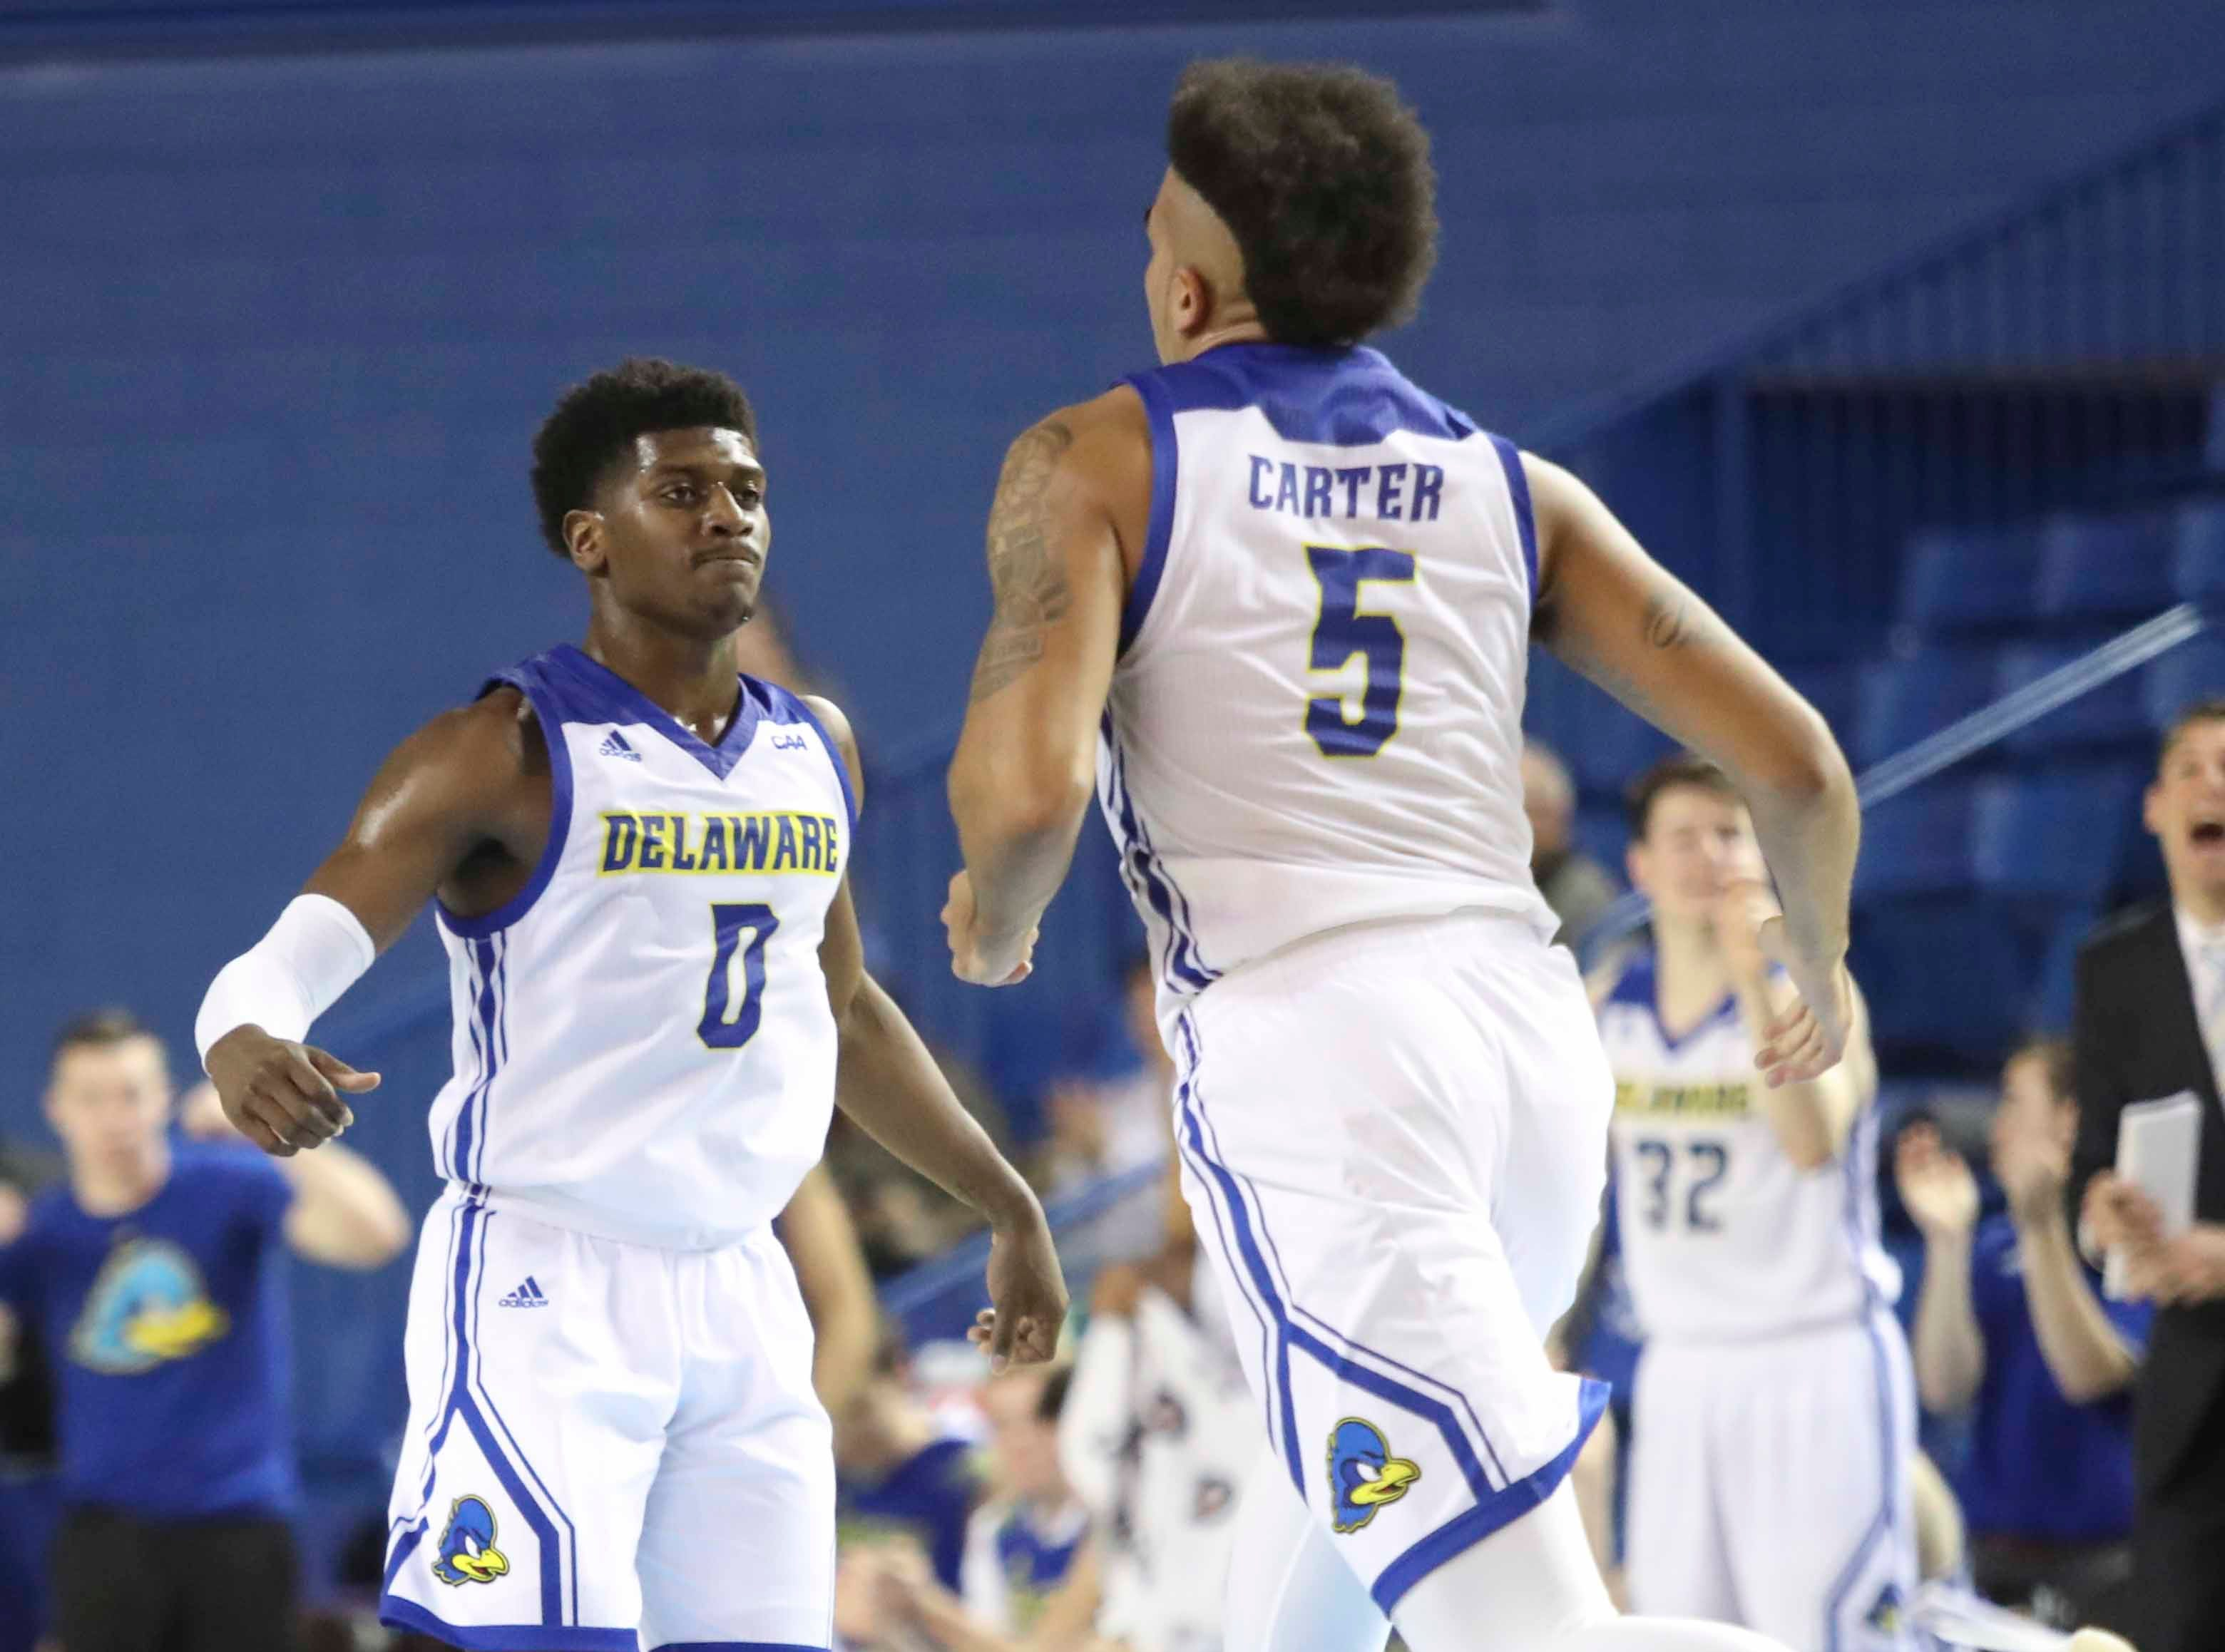 Delaware's Ryan Allen (0) heads back on defense with Eric Carter after Carter scored in the first half at the Bob Carpenter Center Thursday.